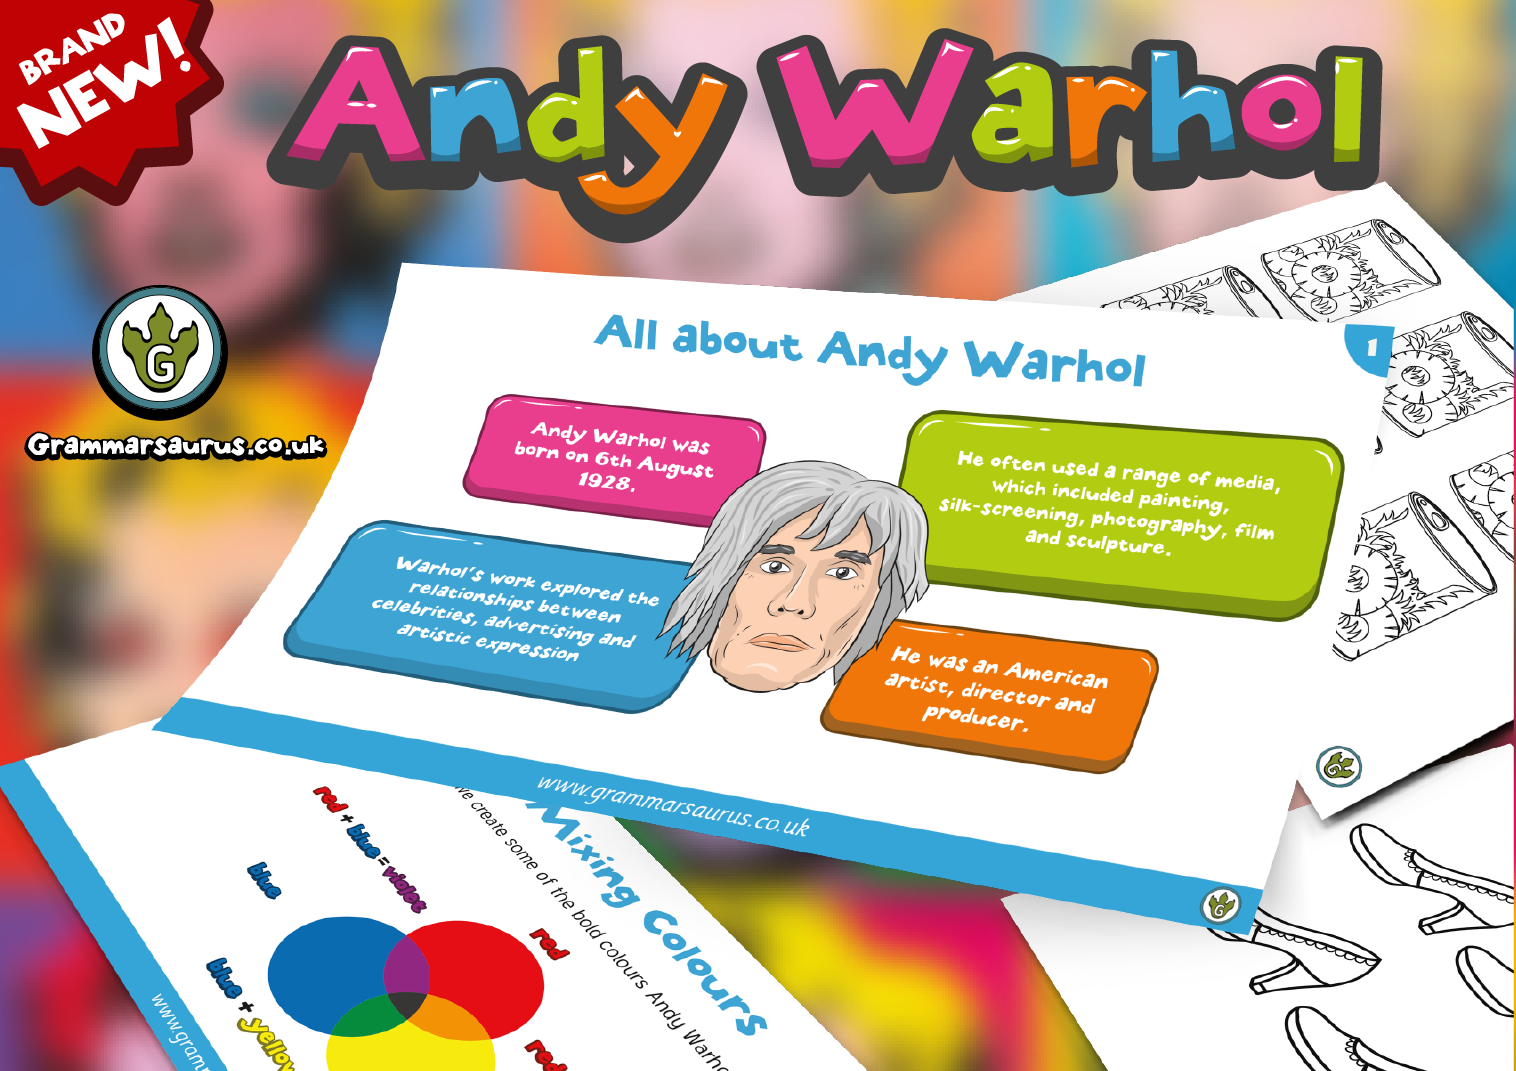 the life and work of andy warhol Browse the best of andy warhol art, including paintings and artwork for sale (with prices), upcoming shows, and exclusive andy warhol articles on artsy.